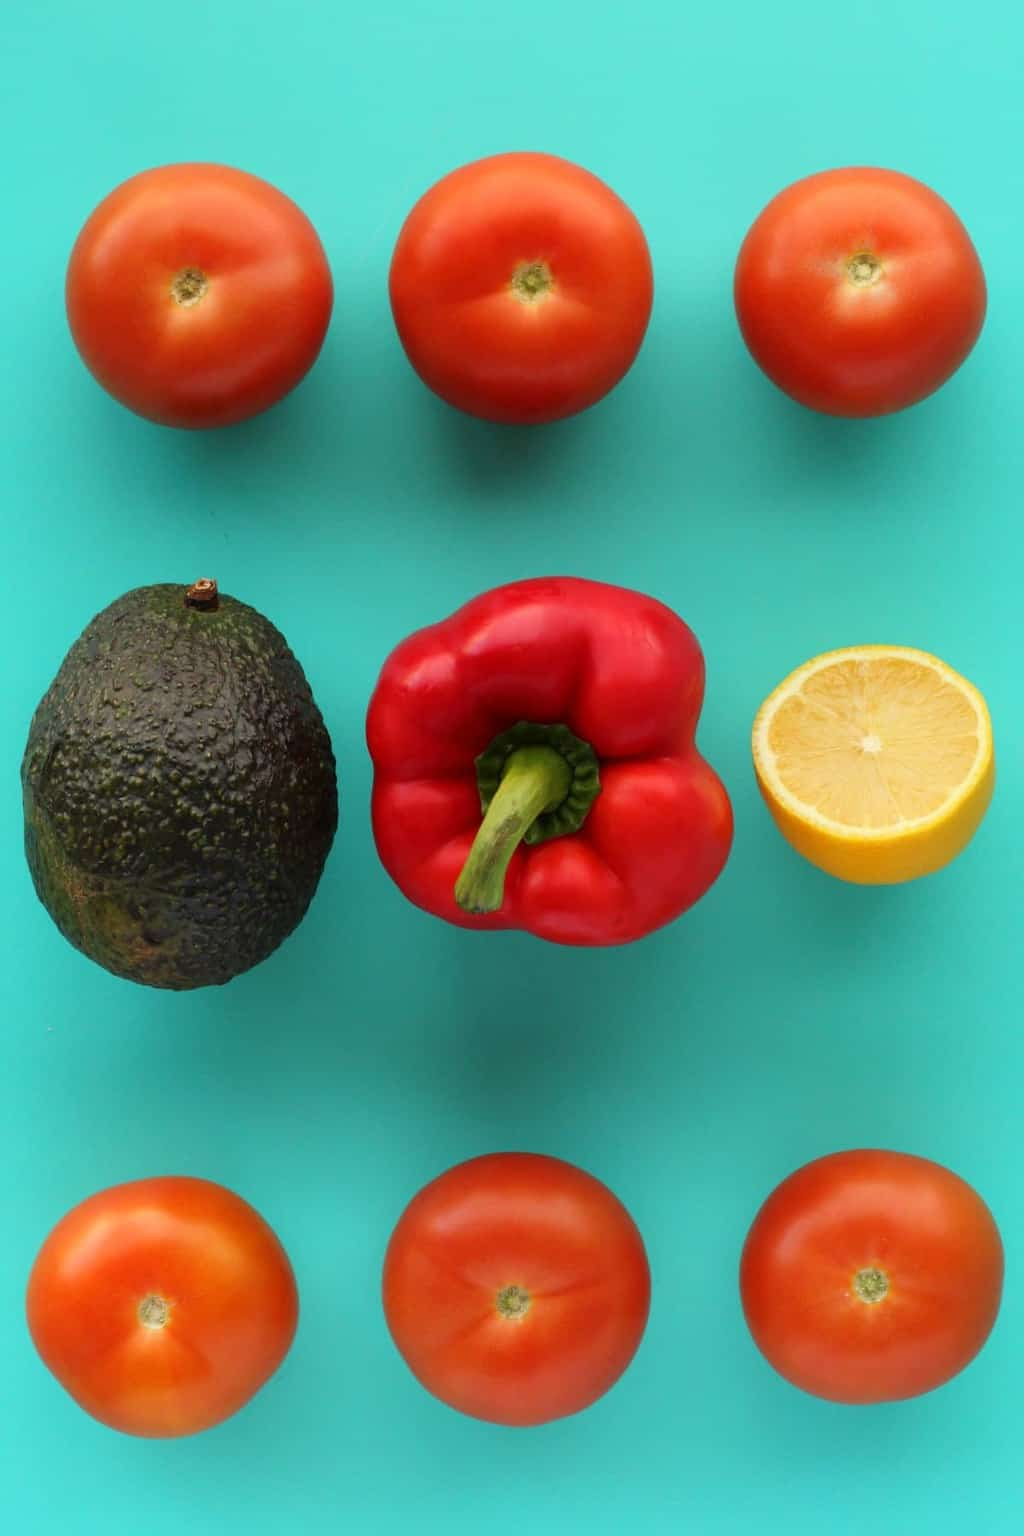 Ingredients for a raw tomato soup, tomatoes, bell pepper, fresh lemon and avocado against a blue background.